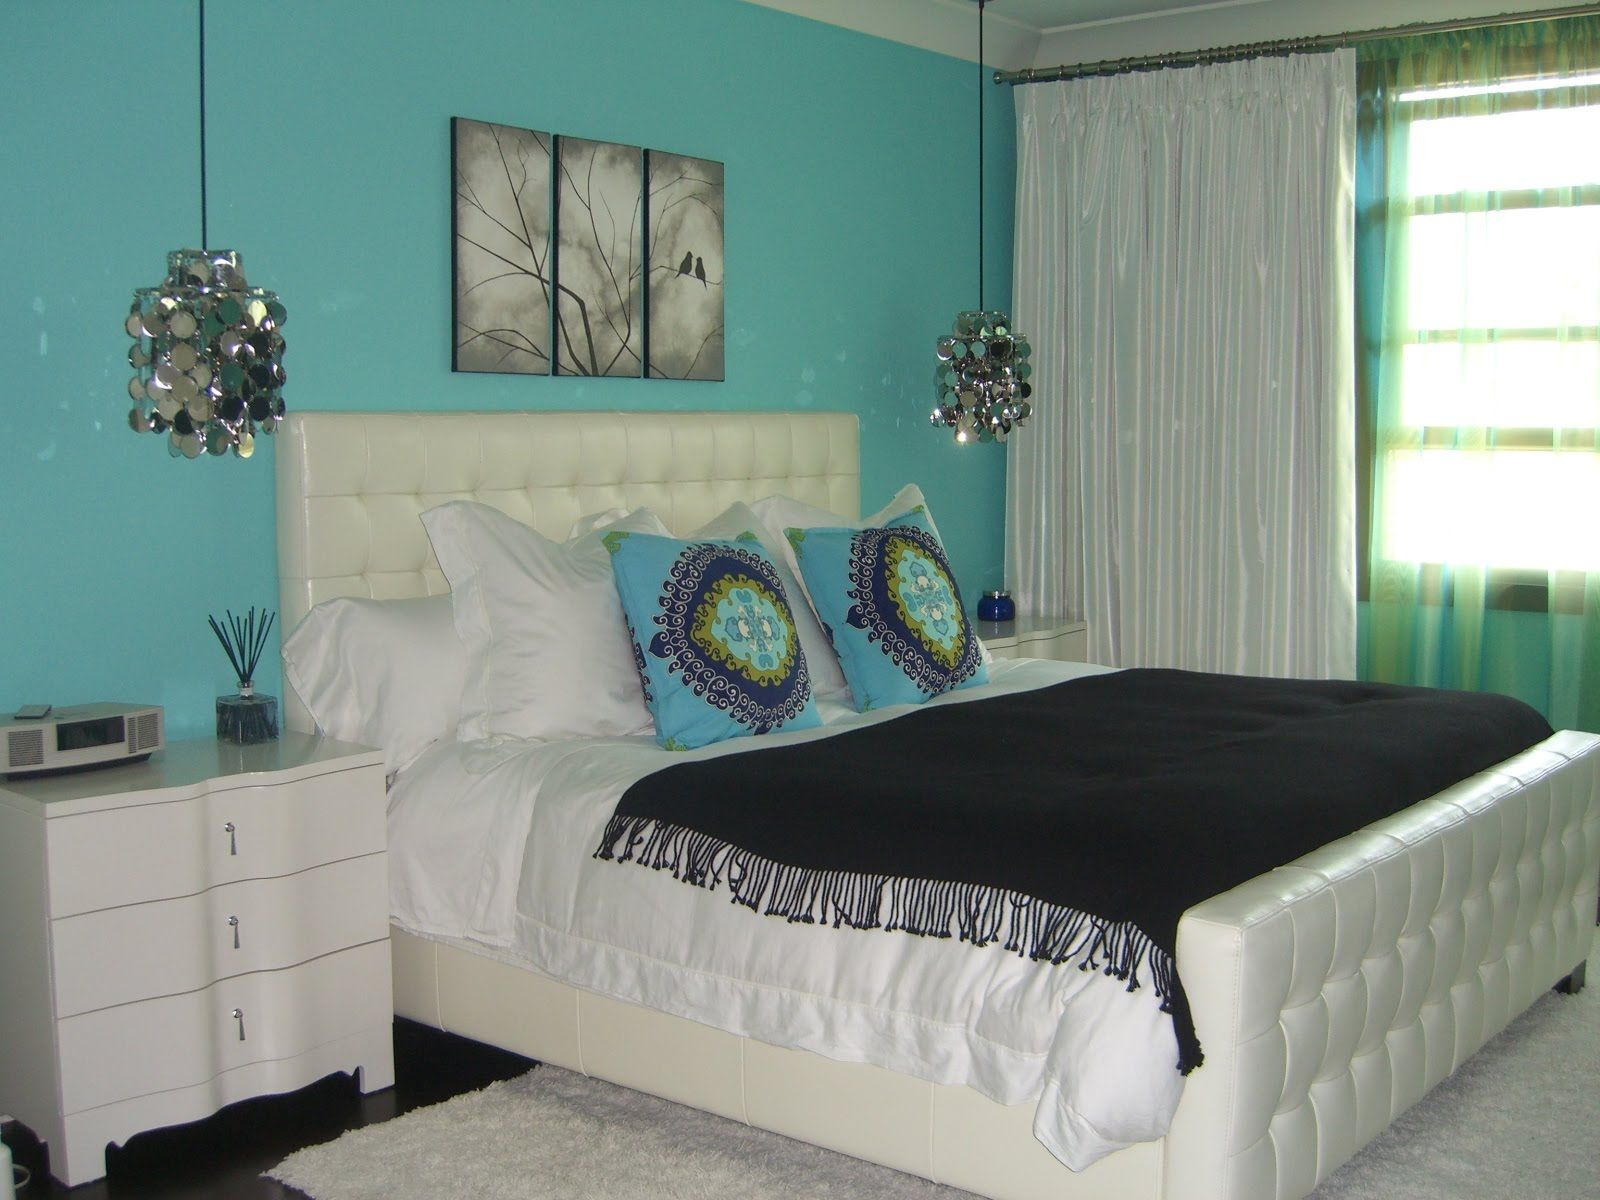 divine artwork canvas portray over turquoise bedroom dresser